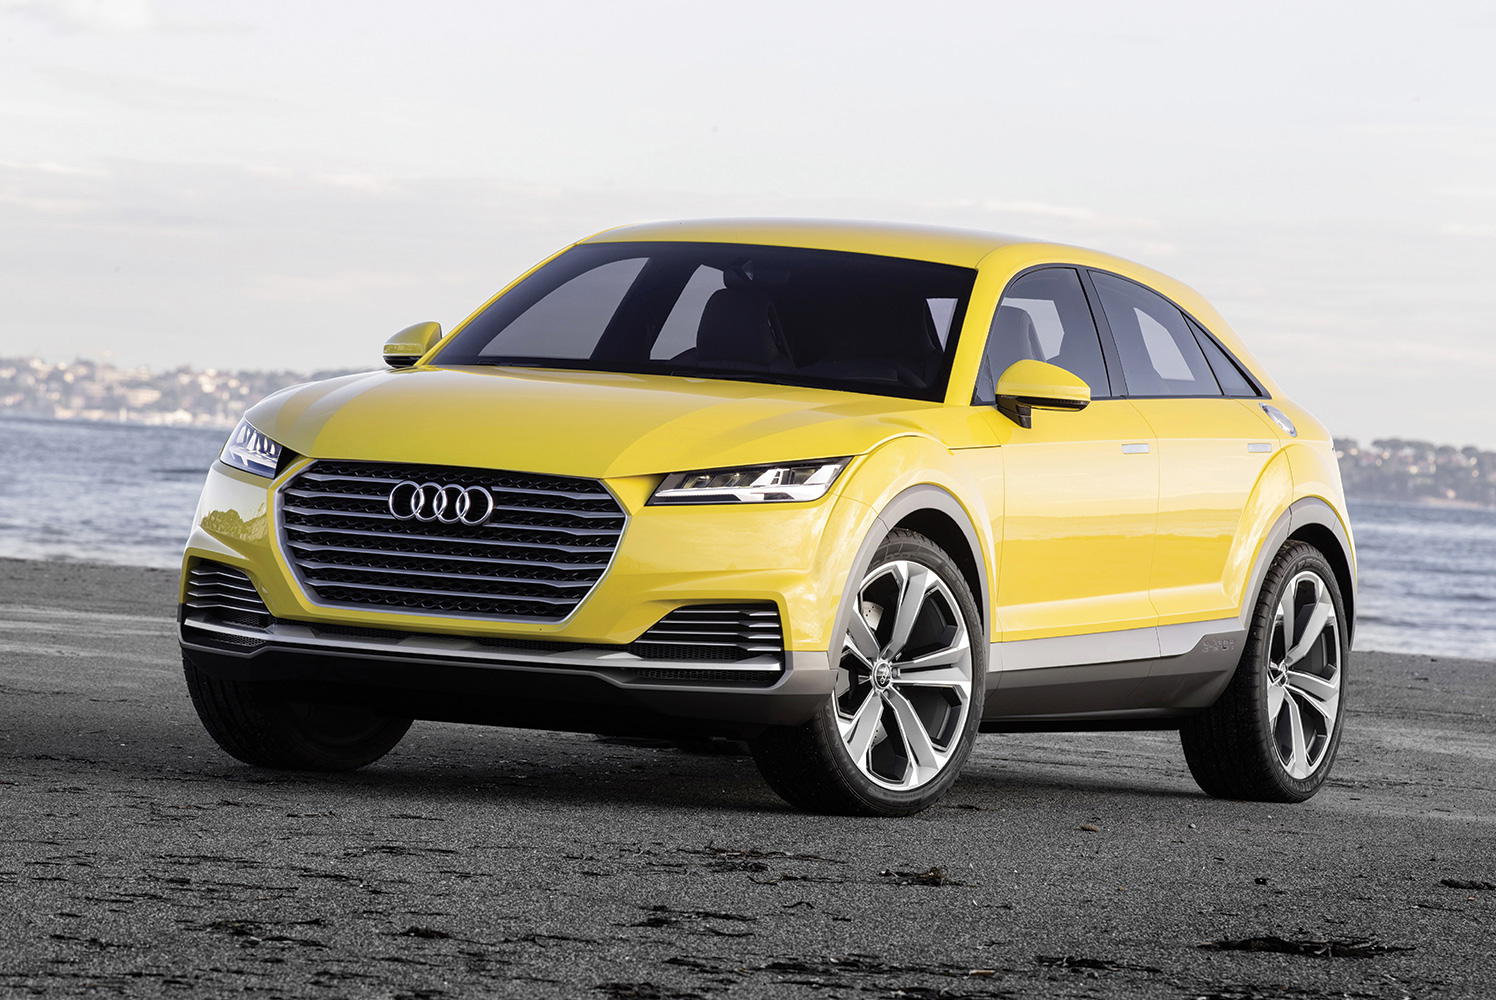 Audi Confirms All-New Audi Q4 Production in 2019